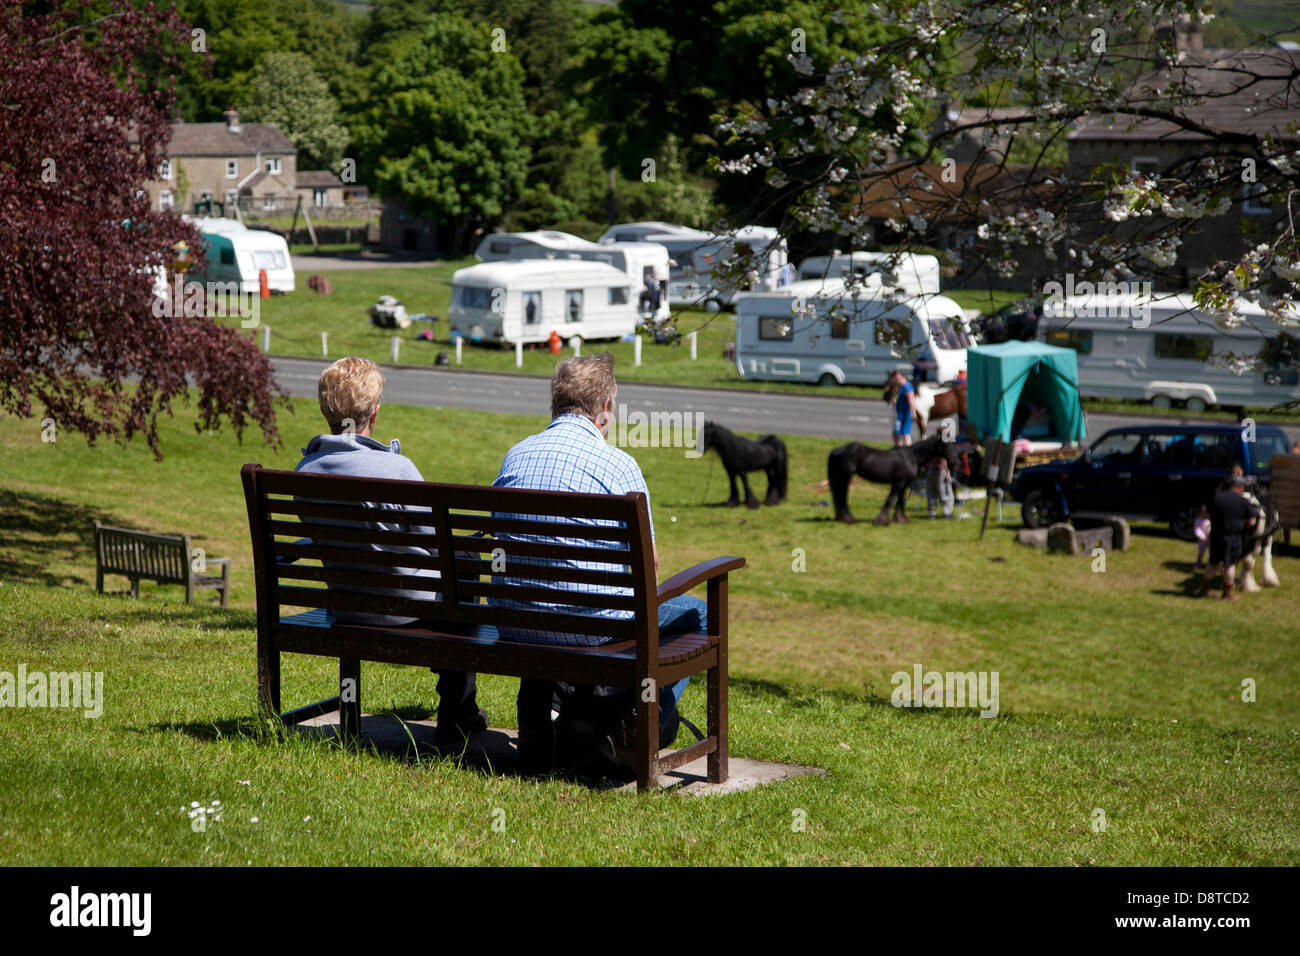 Trailer homes at Bainbridge, Richmondshire, North Yorkshire, UK. 4th June, 2013. Local Residents observing the encampment - Stock Image